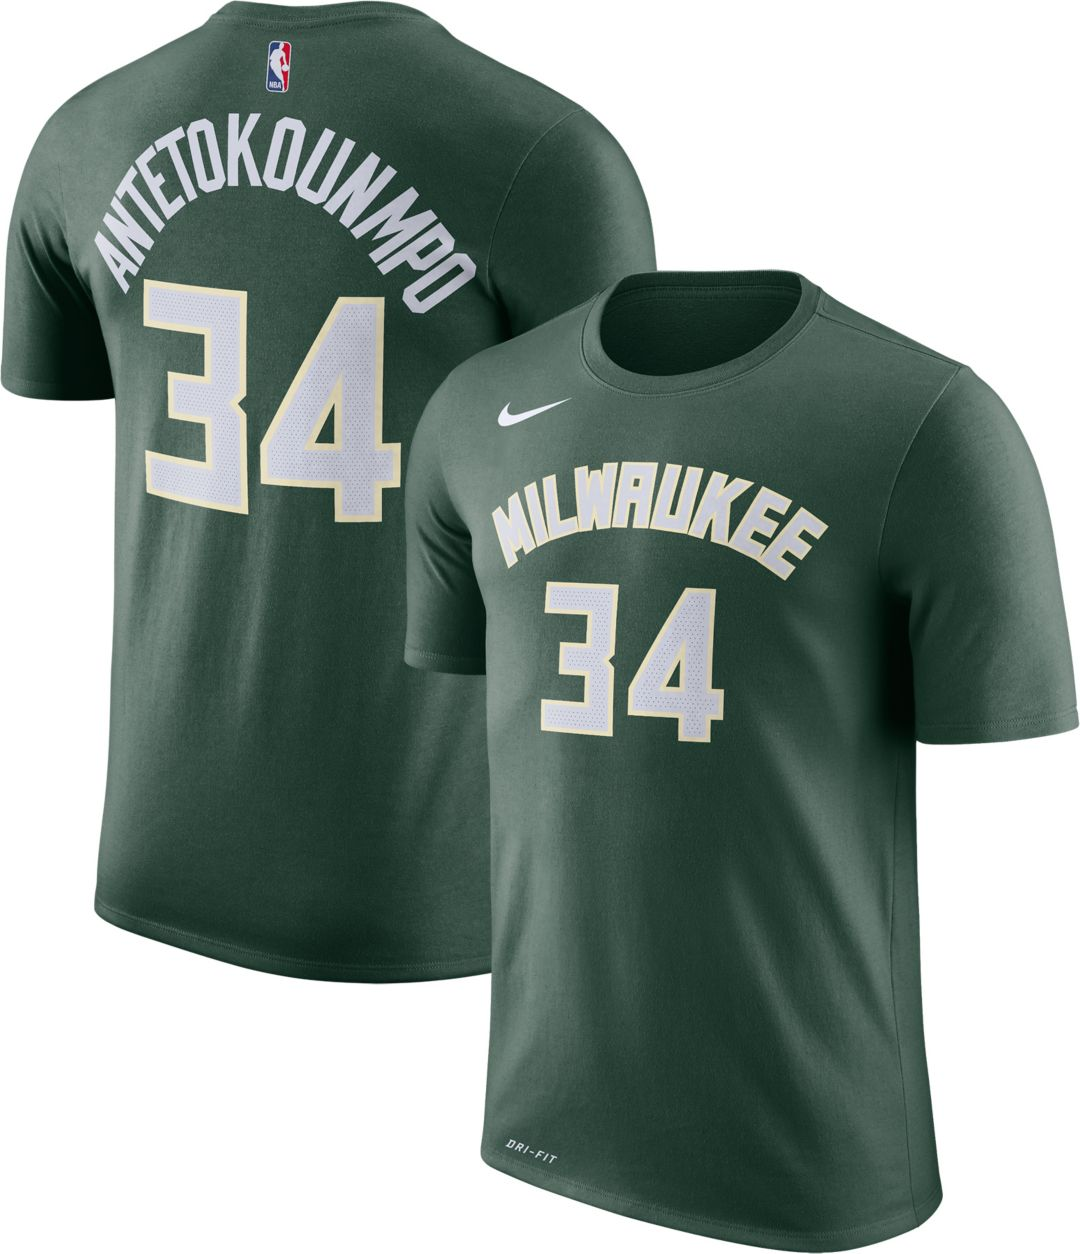 huge selection of 74c6a 85eef Nike Youth Milwaukee Bucks Giannis Antetokounmpo #34 Dri-FIT Green T-Shirt